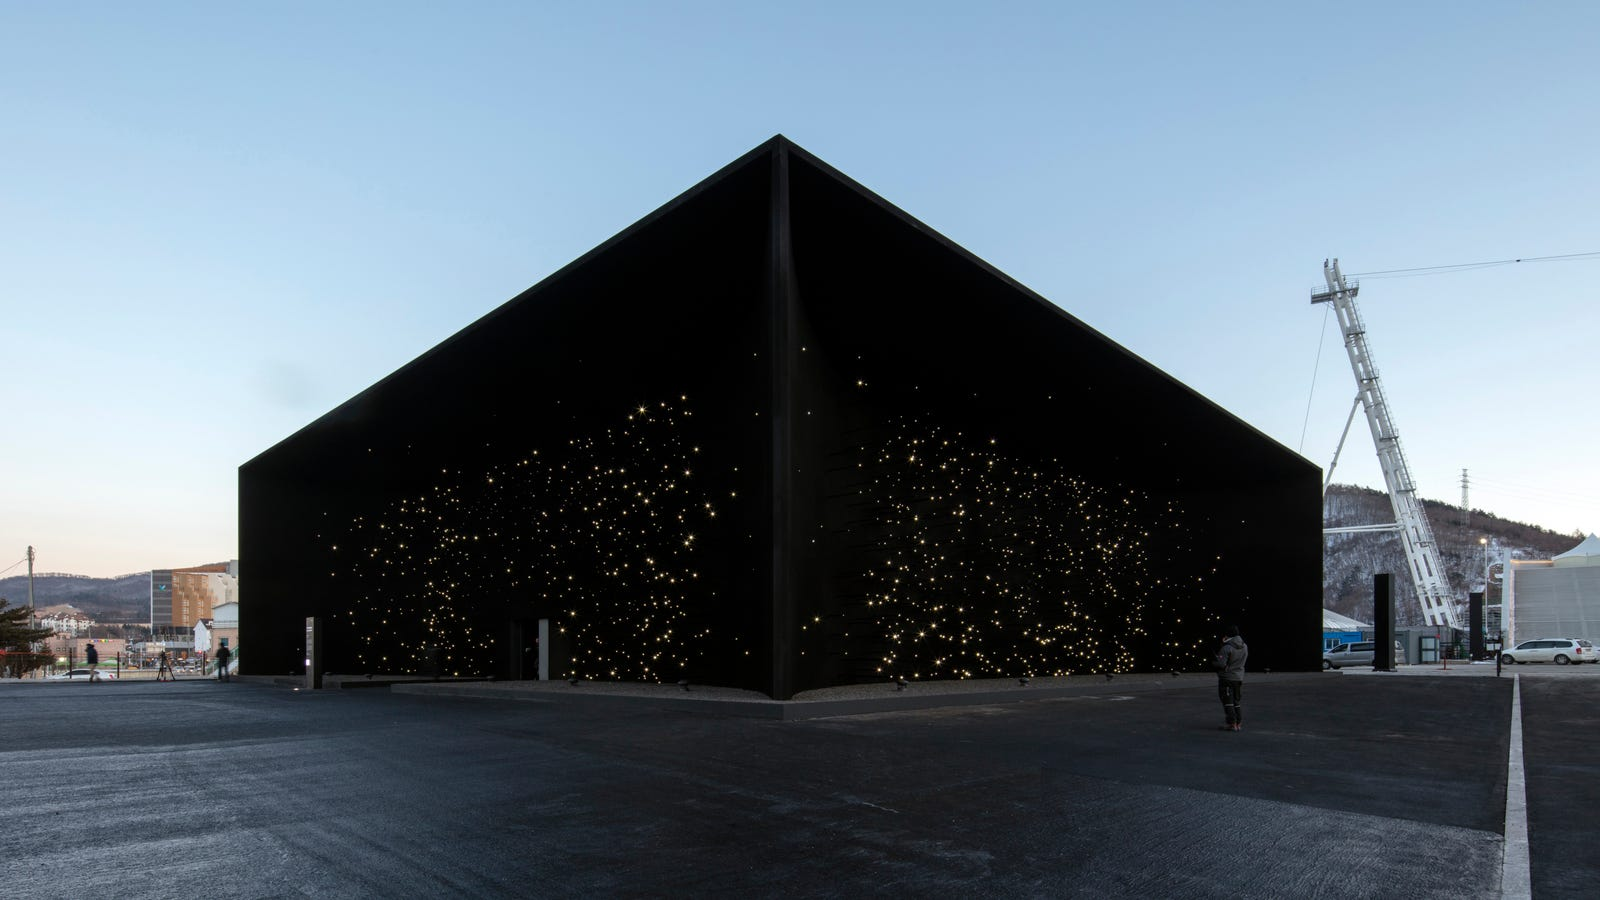 nzudnsmbmdaa9jfi080i - My New Home is This Void-Like Pavilion in Pyeongchang, Painted in the Blackest Black worldwide